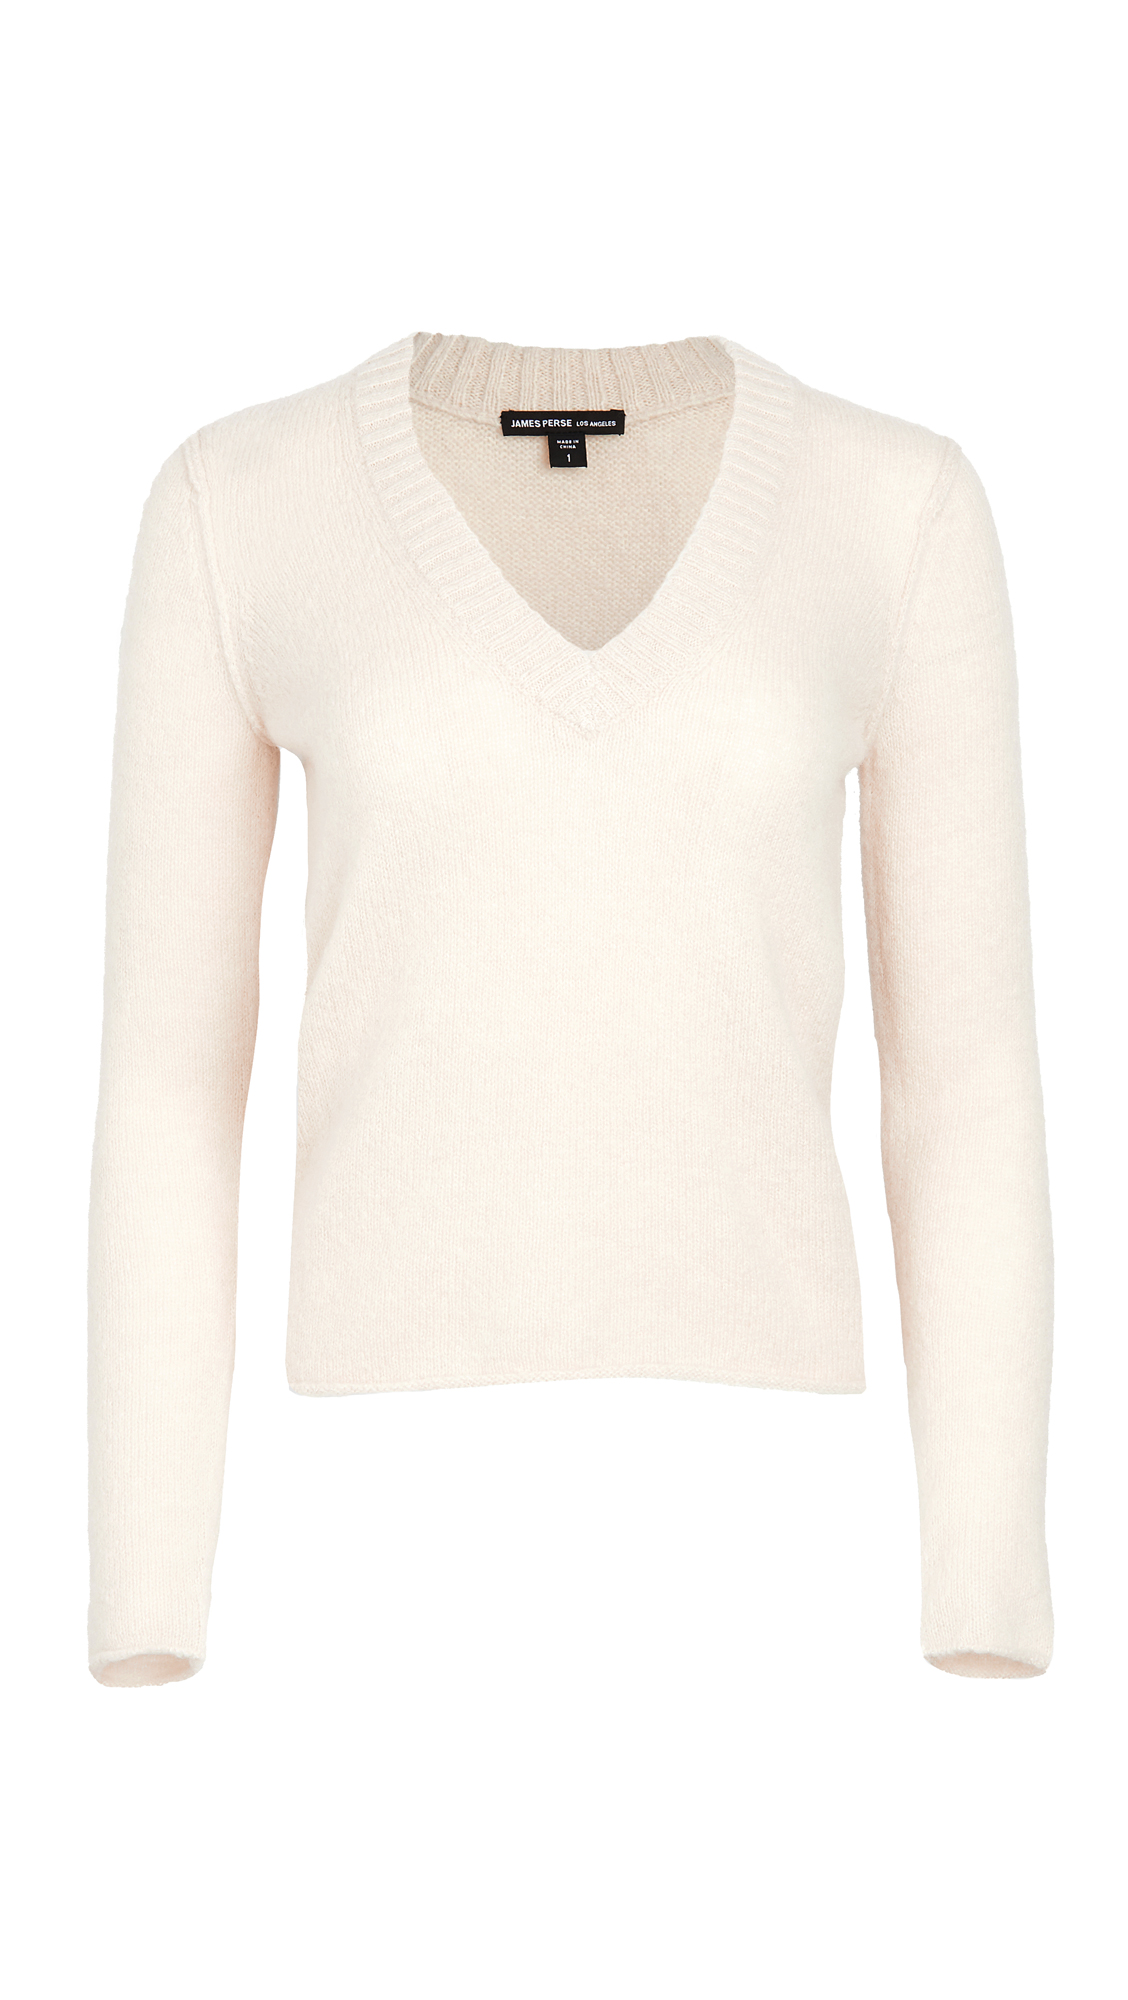 James Perse Cashmere Shrunken Deep V Sweater